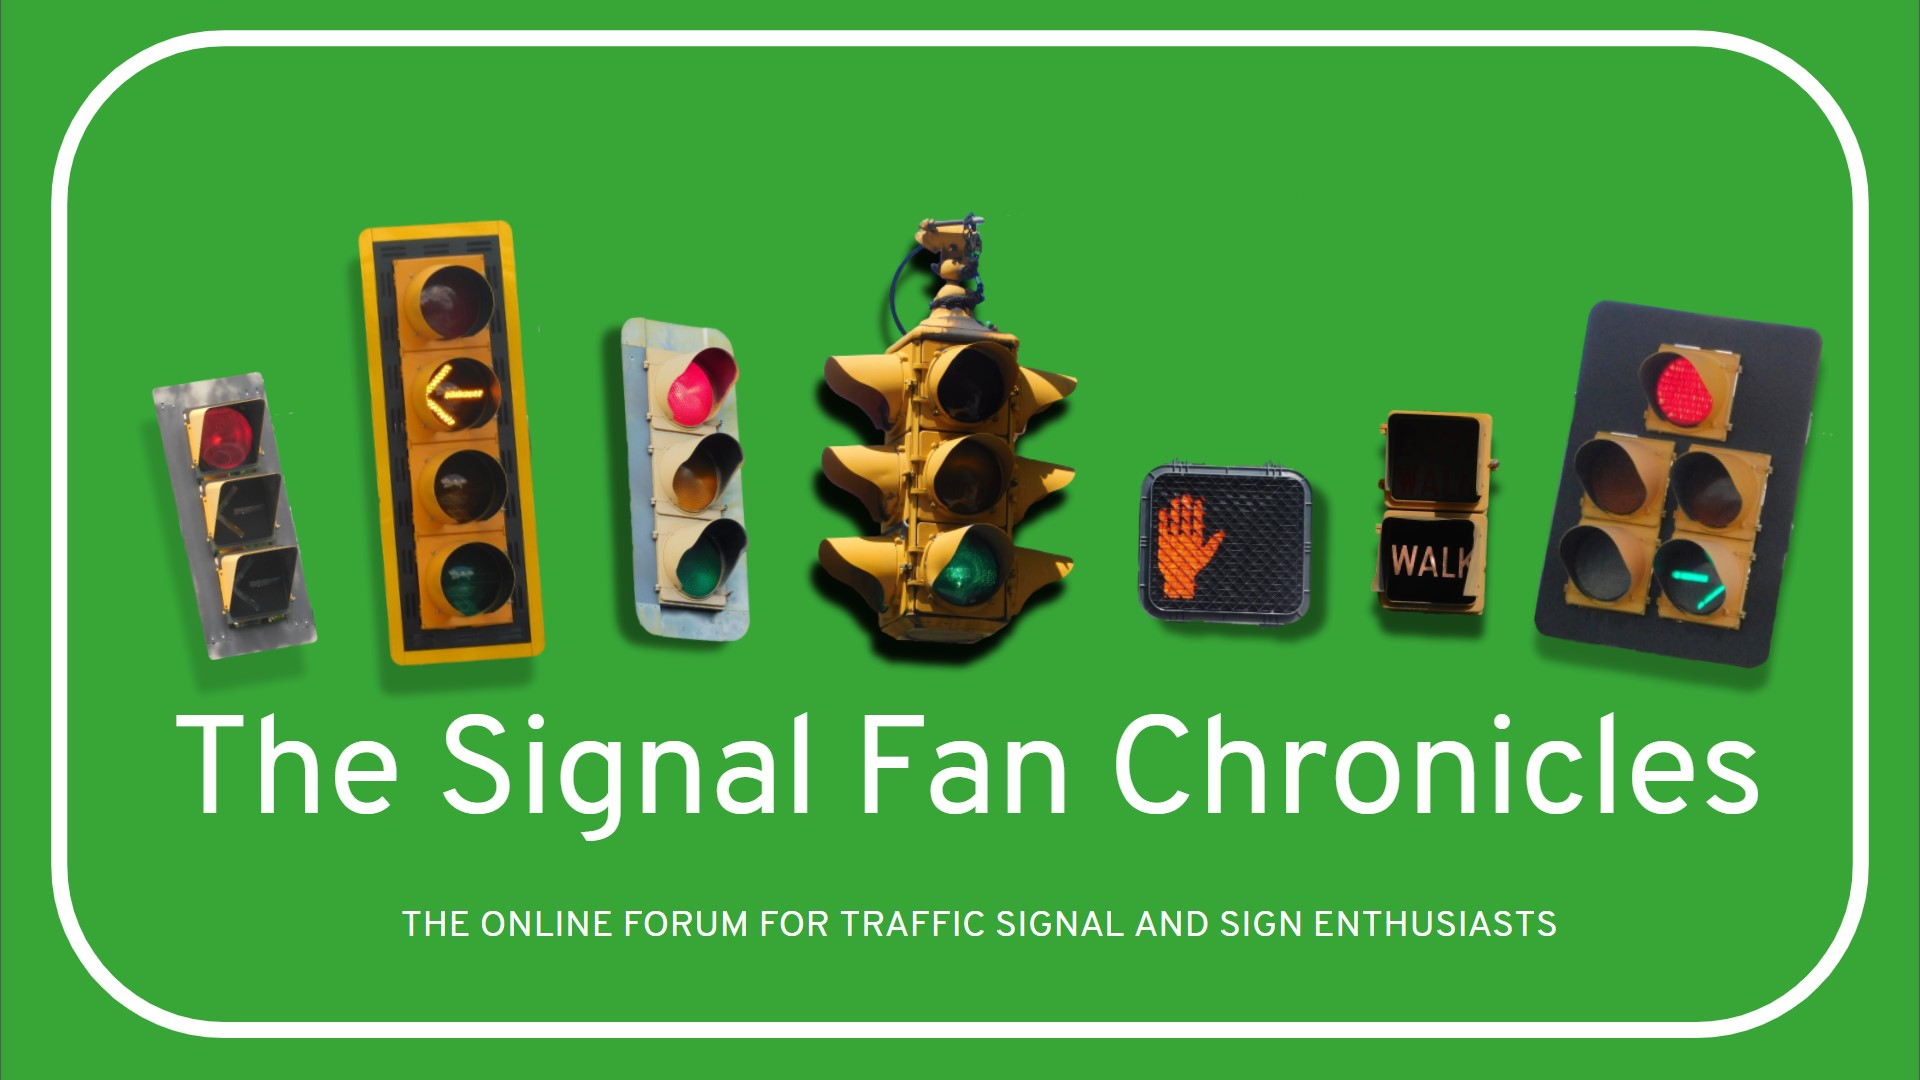 The Signal Fan Chronicles